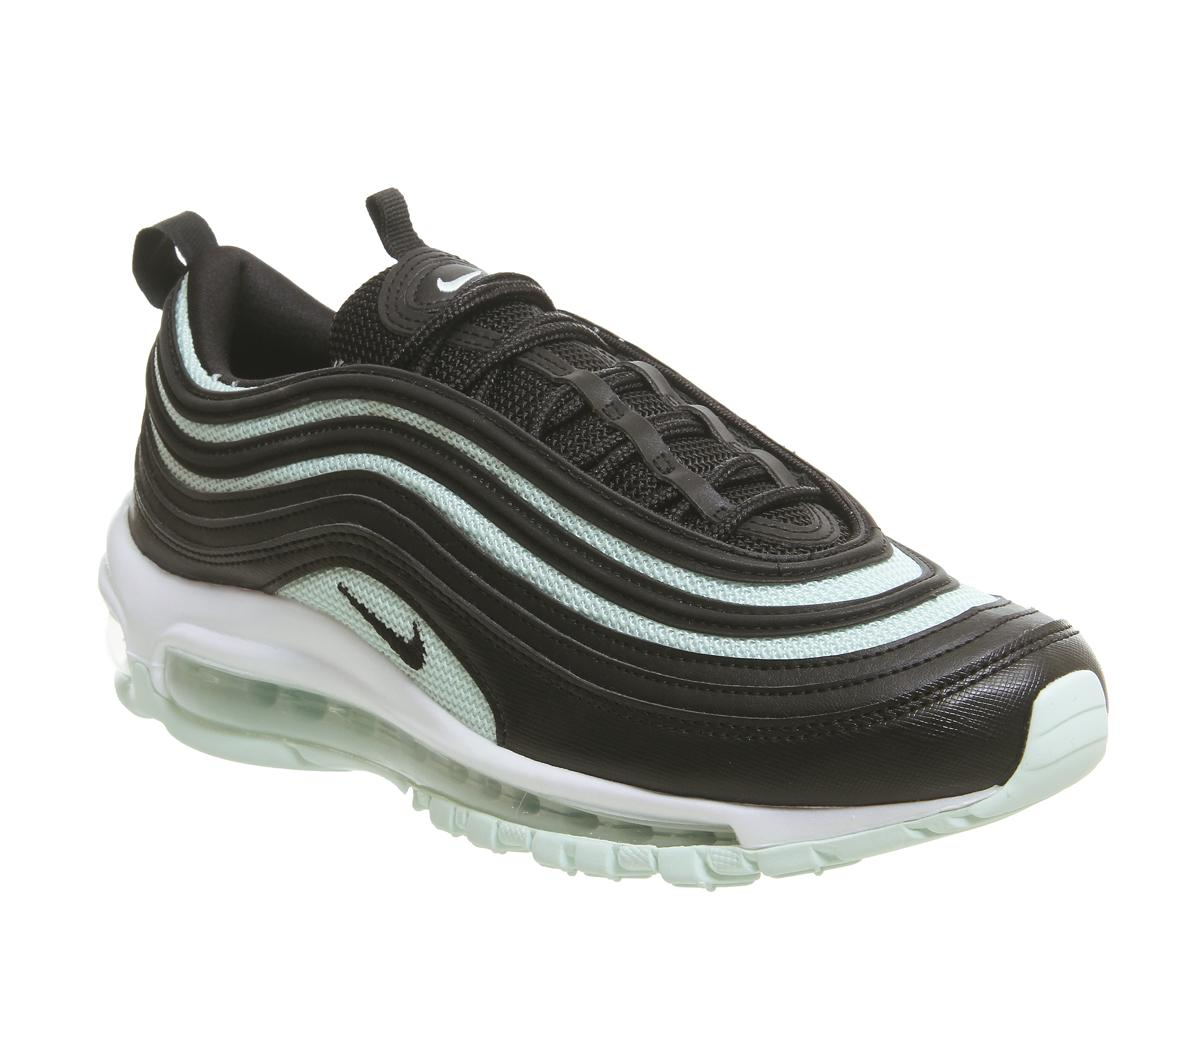 Nike Air Max 97 Trainers Black Black Igloo White Sneaker damen